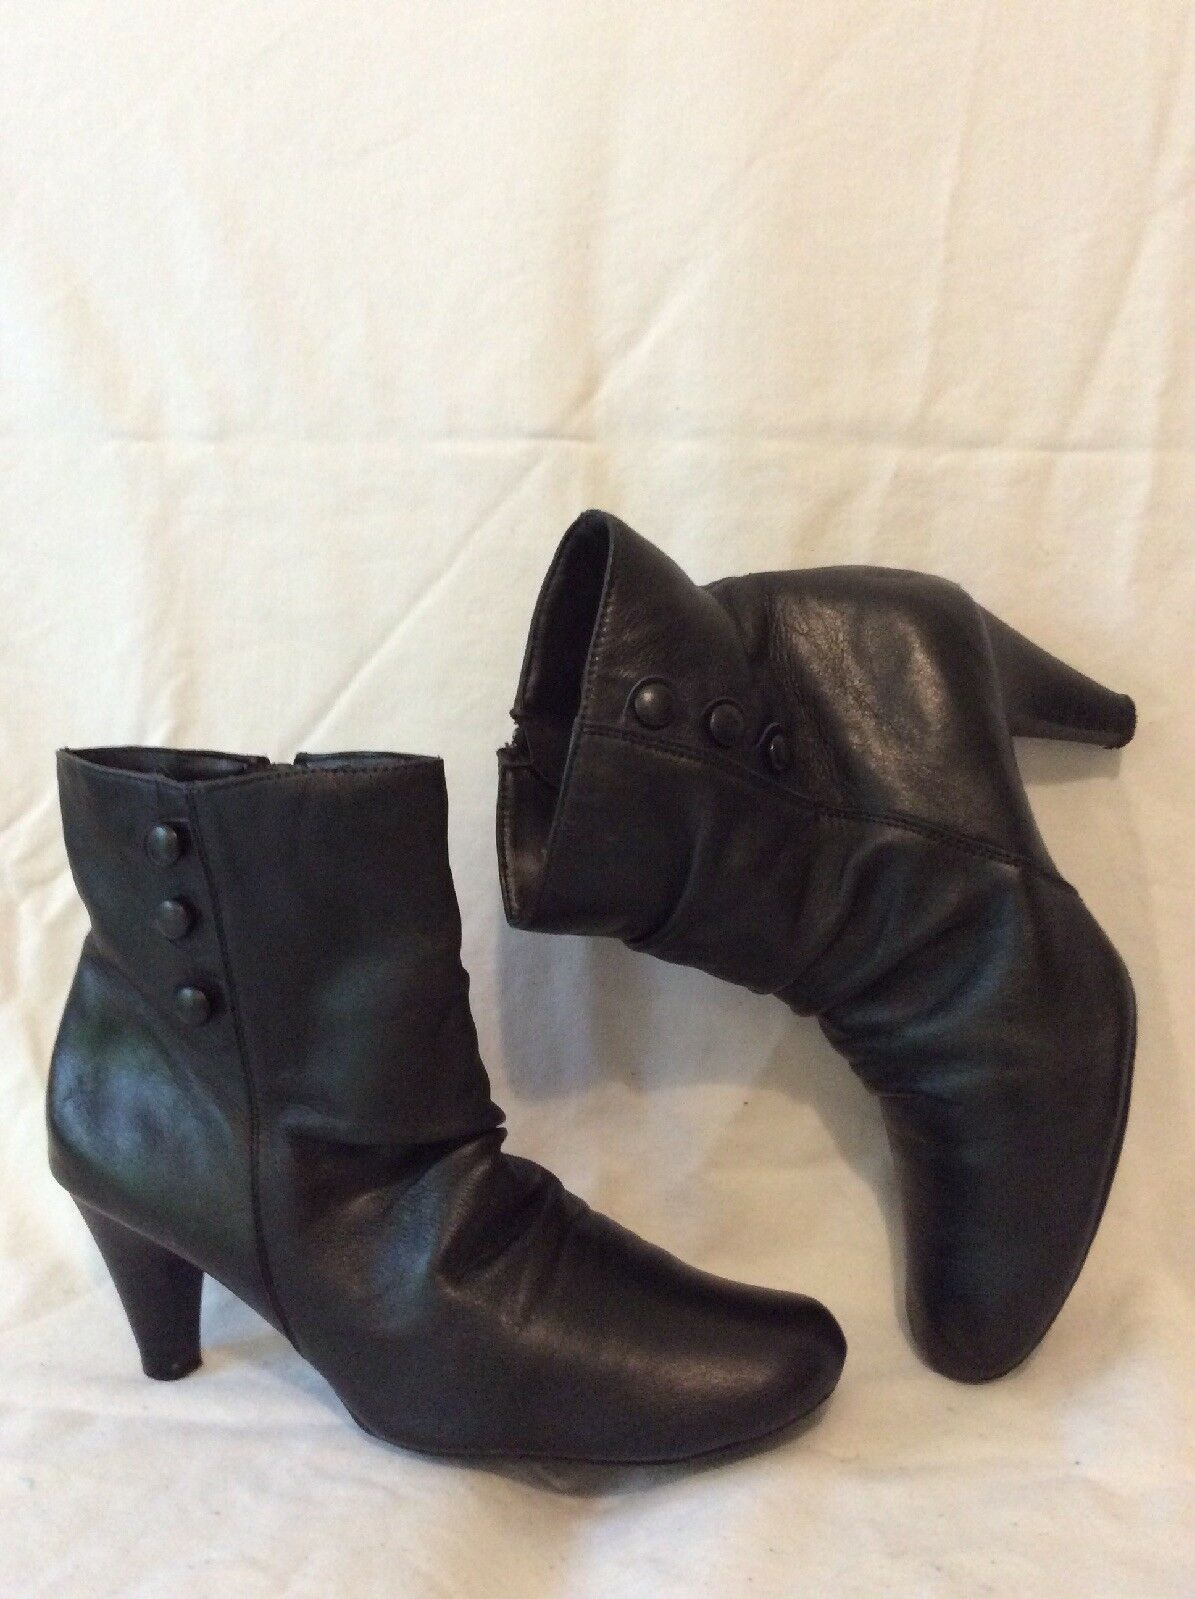 Gluv Your Feet Black Ankle Leather Boots Size 6